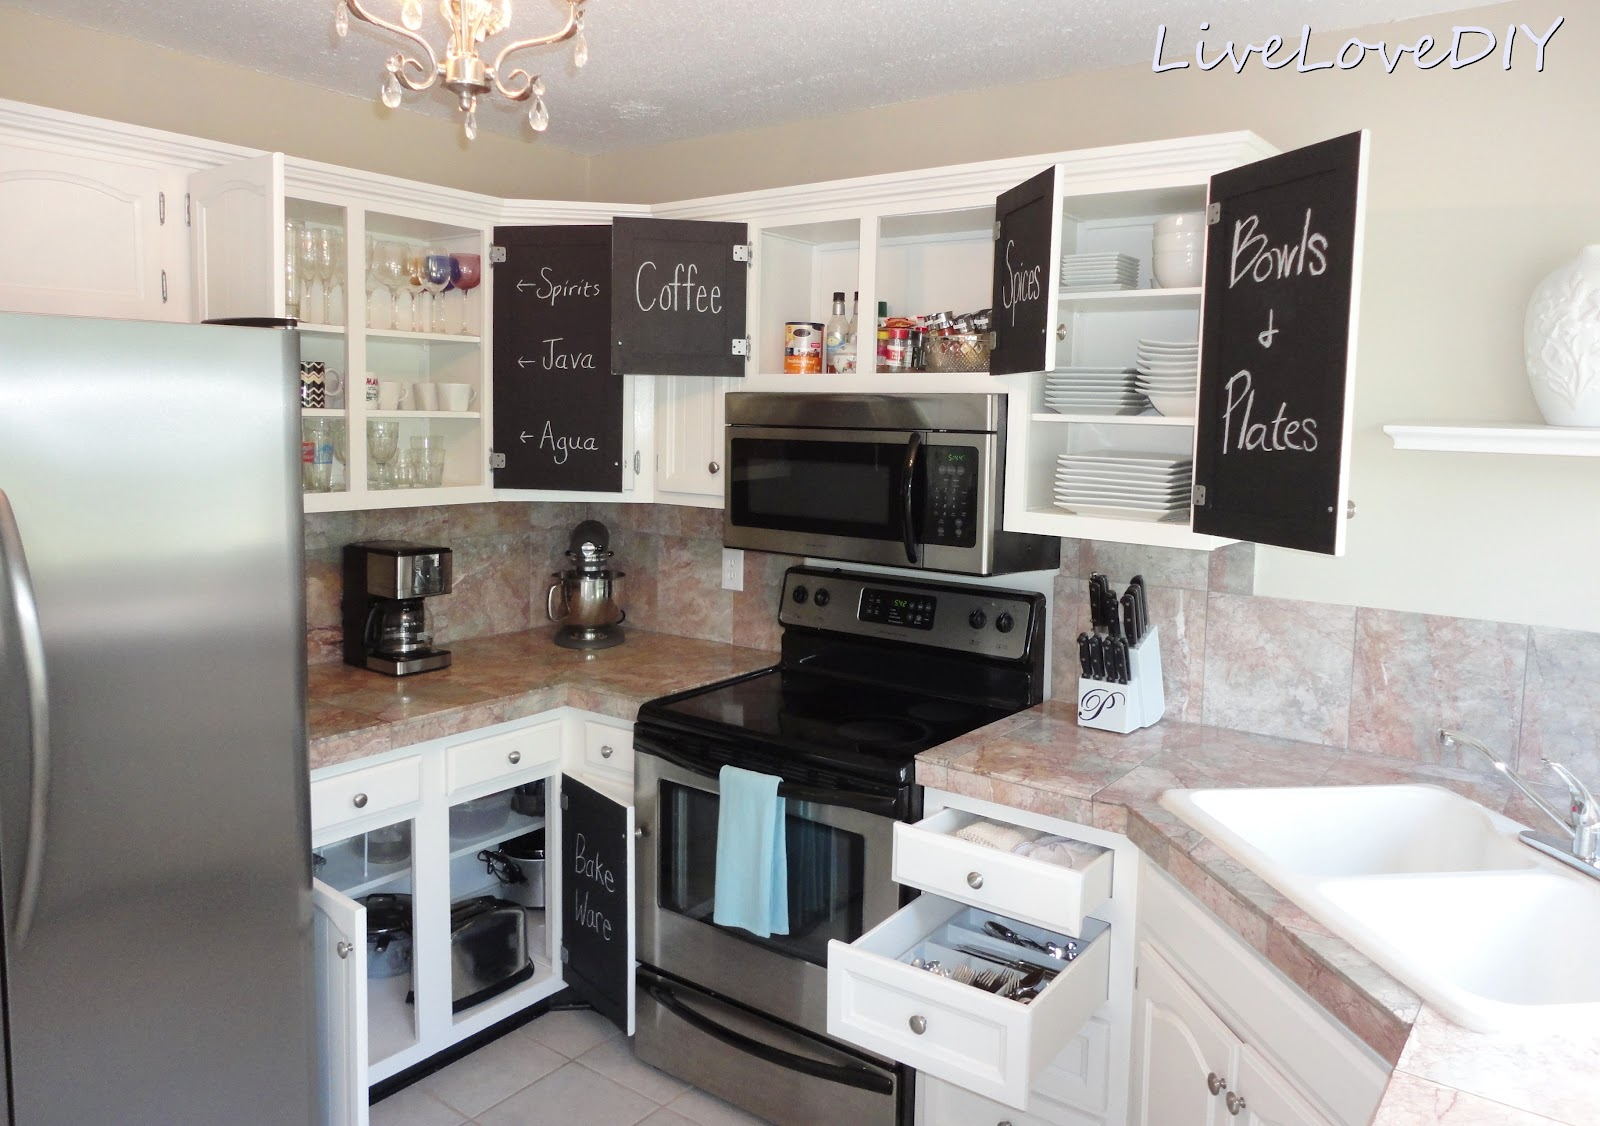 chalk paint kitchen cabinetsLiveLoveDIY The Chalkboard Paint Kitchen Cabinet Makeover